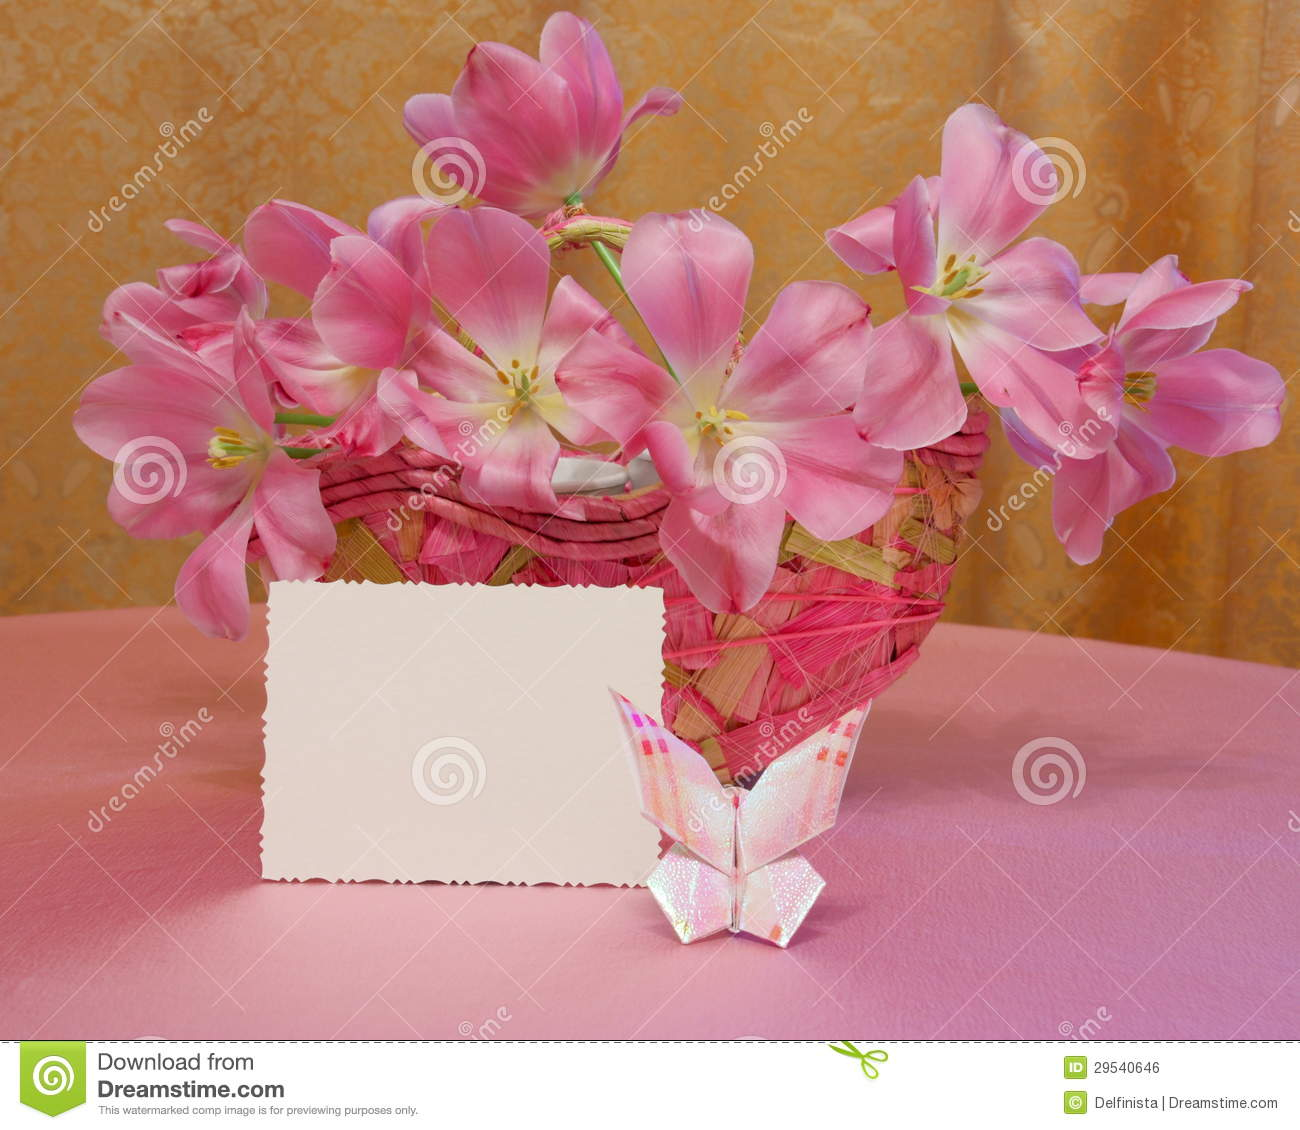 Mothers Day Card or Easter Image - Stock Photo